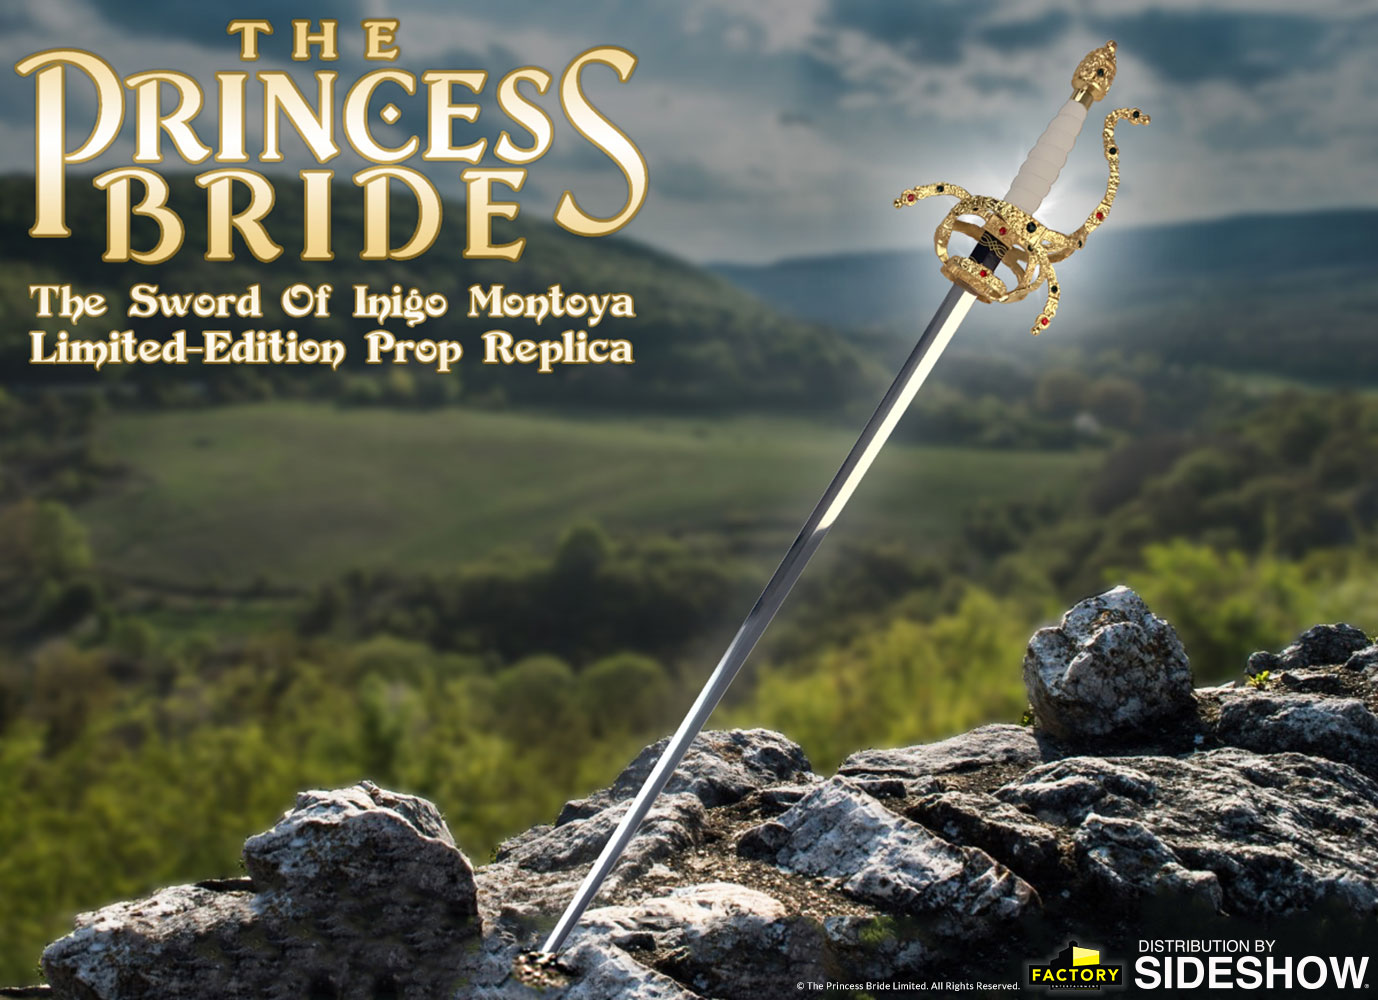 The Sword of Inigo Montoya